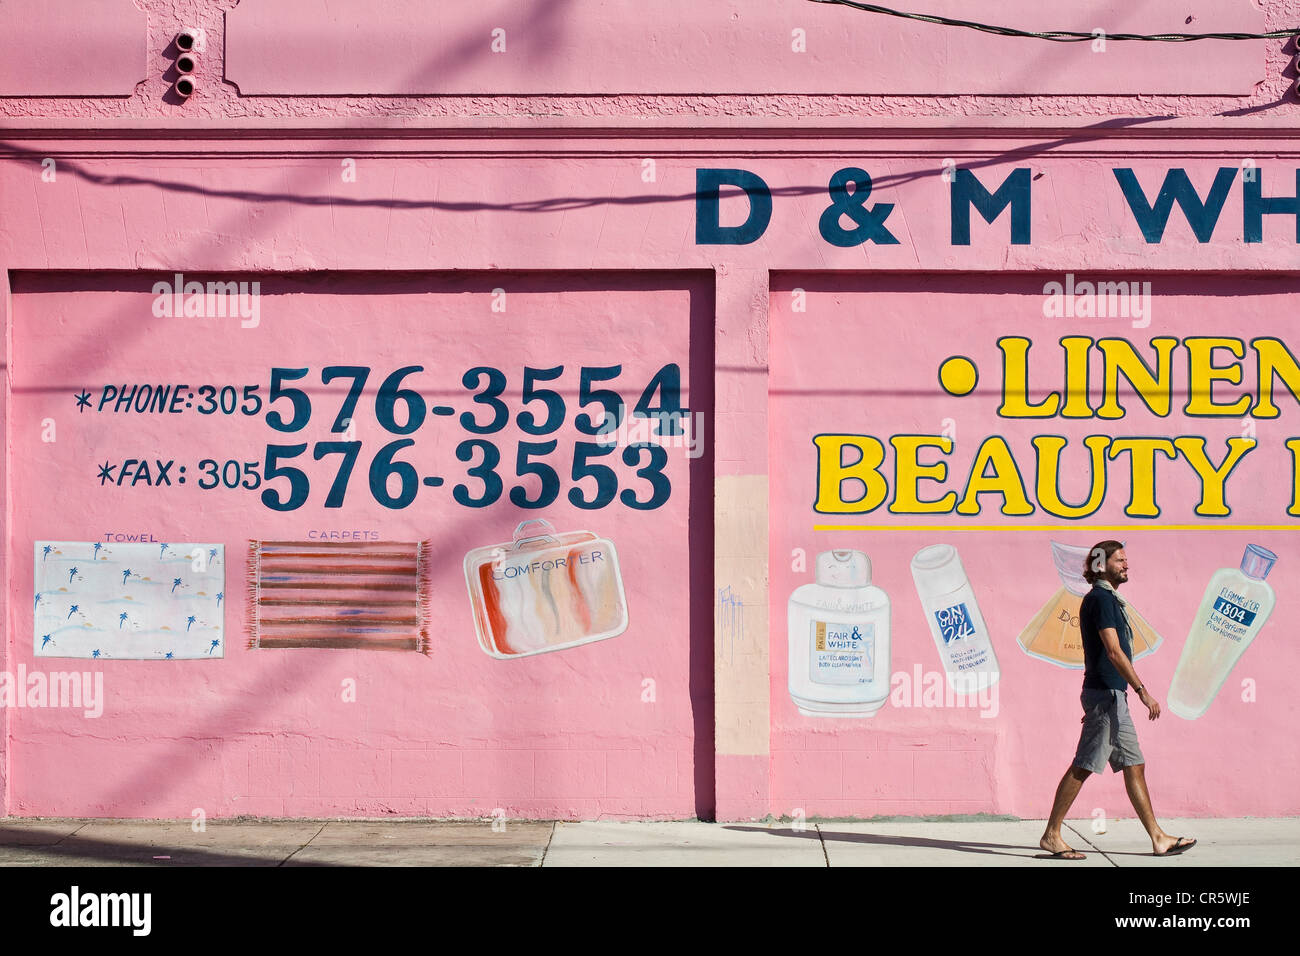 united states florida miami wynwood art district dm wholesale shop cosmetic products and bathroom accessories